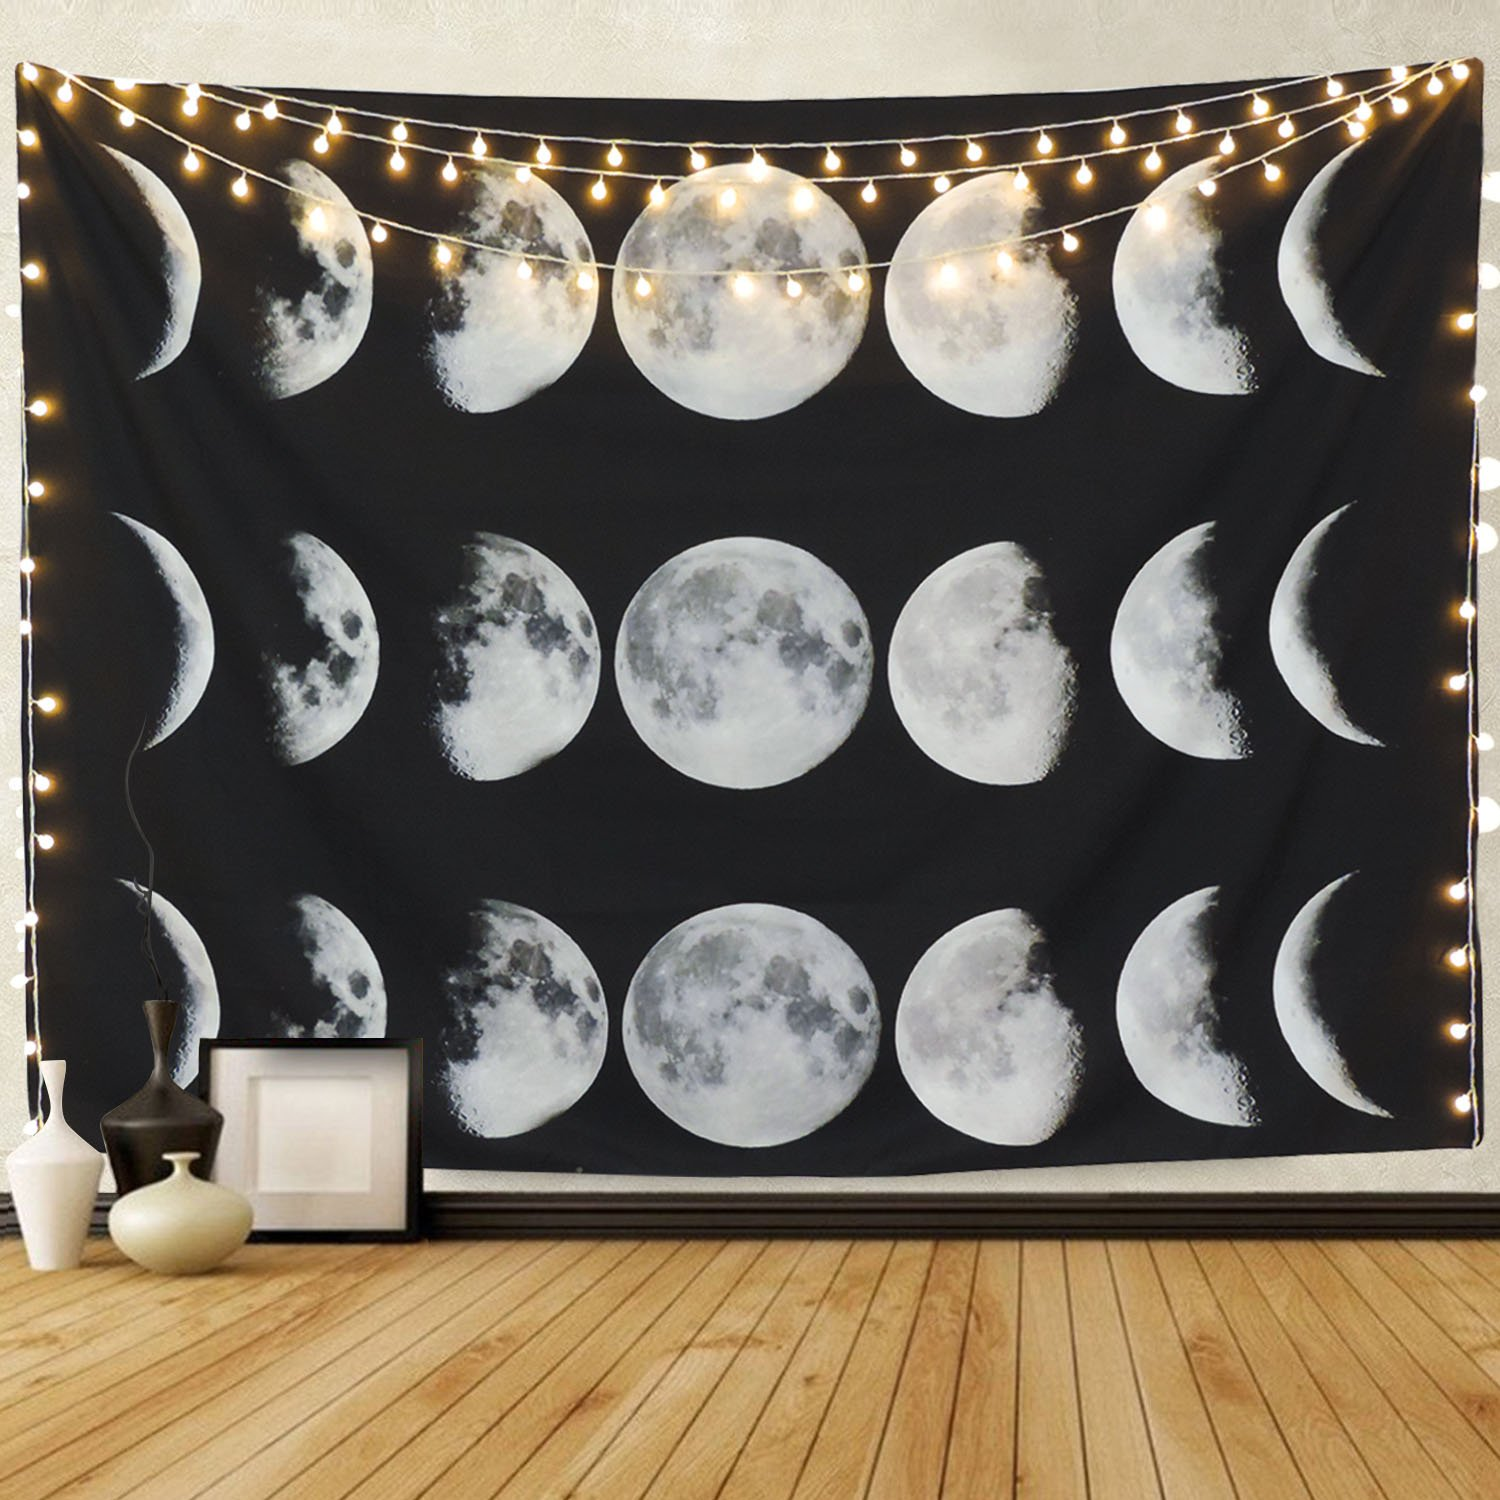 """Martine Mall Tapestry Moon Phase Change Tapestry Wall Tapestry Wall Hanging Tapestries Moon Constellations Tapestry Indian Wall Decor (Moon Phase Change, 51.2"""" x 59.1"""")"""